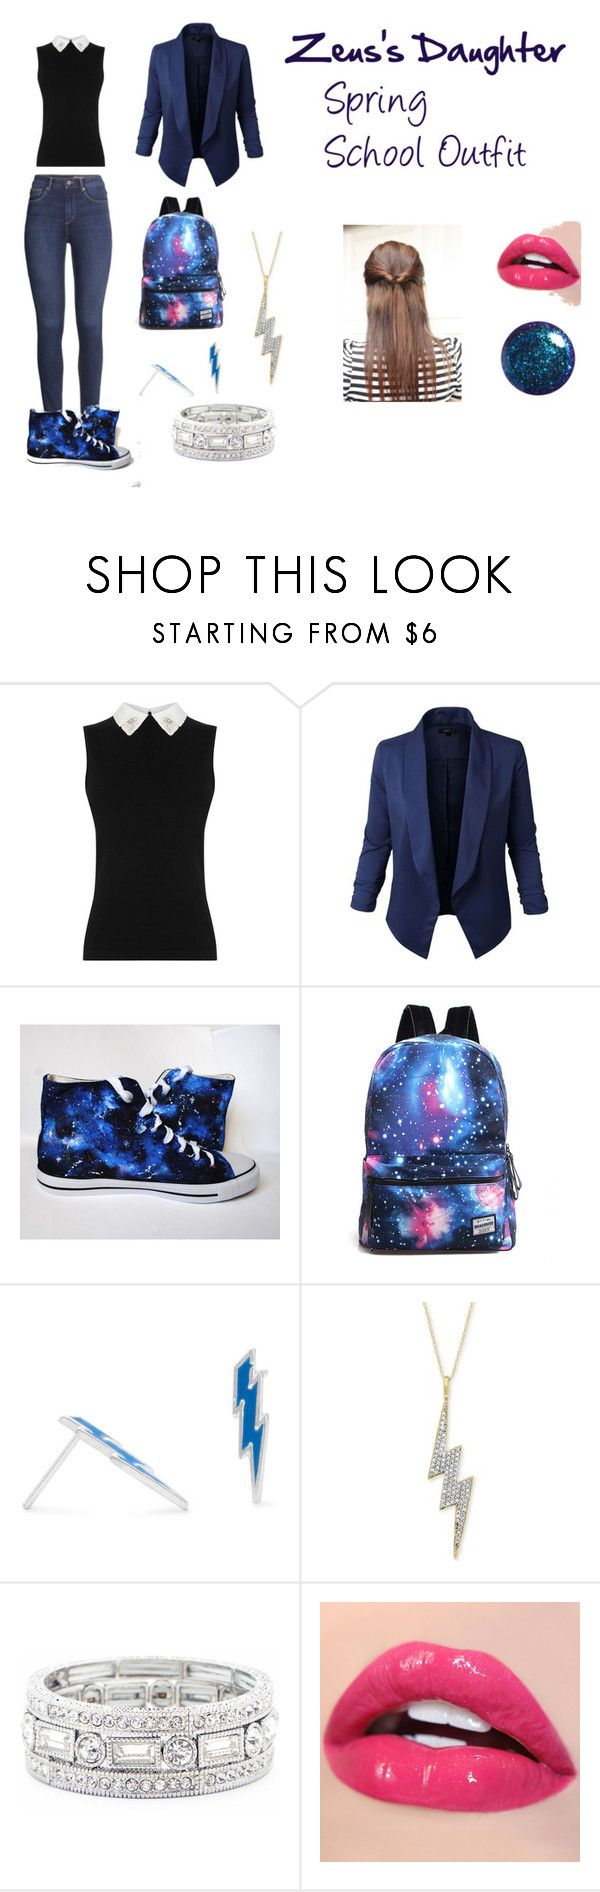 """Zeus's Daughter Spring #1"" by h-zita ❤ liked on Polyvore featuring Jupe de Abby, H&M, Wrapped, Sole Society, percyjackson, pjo and bookinspiration"